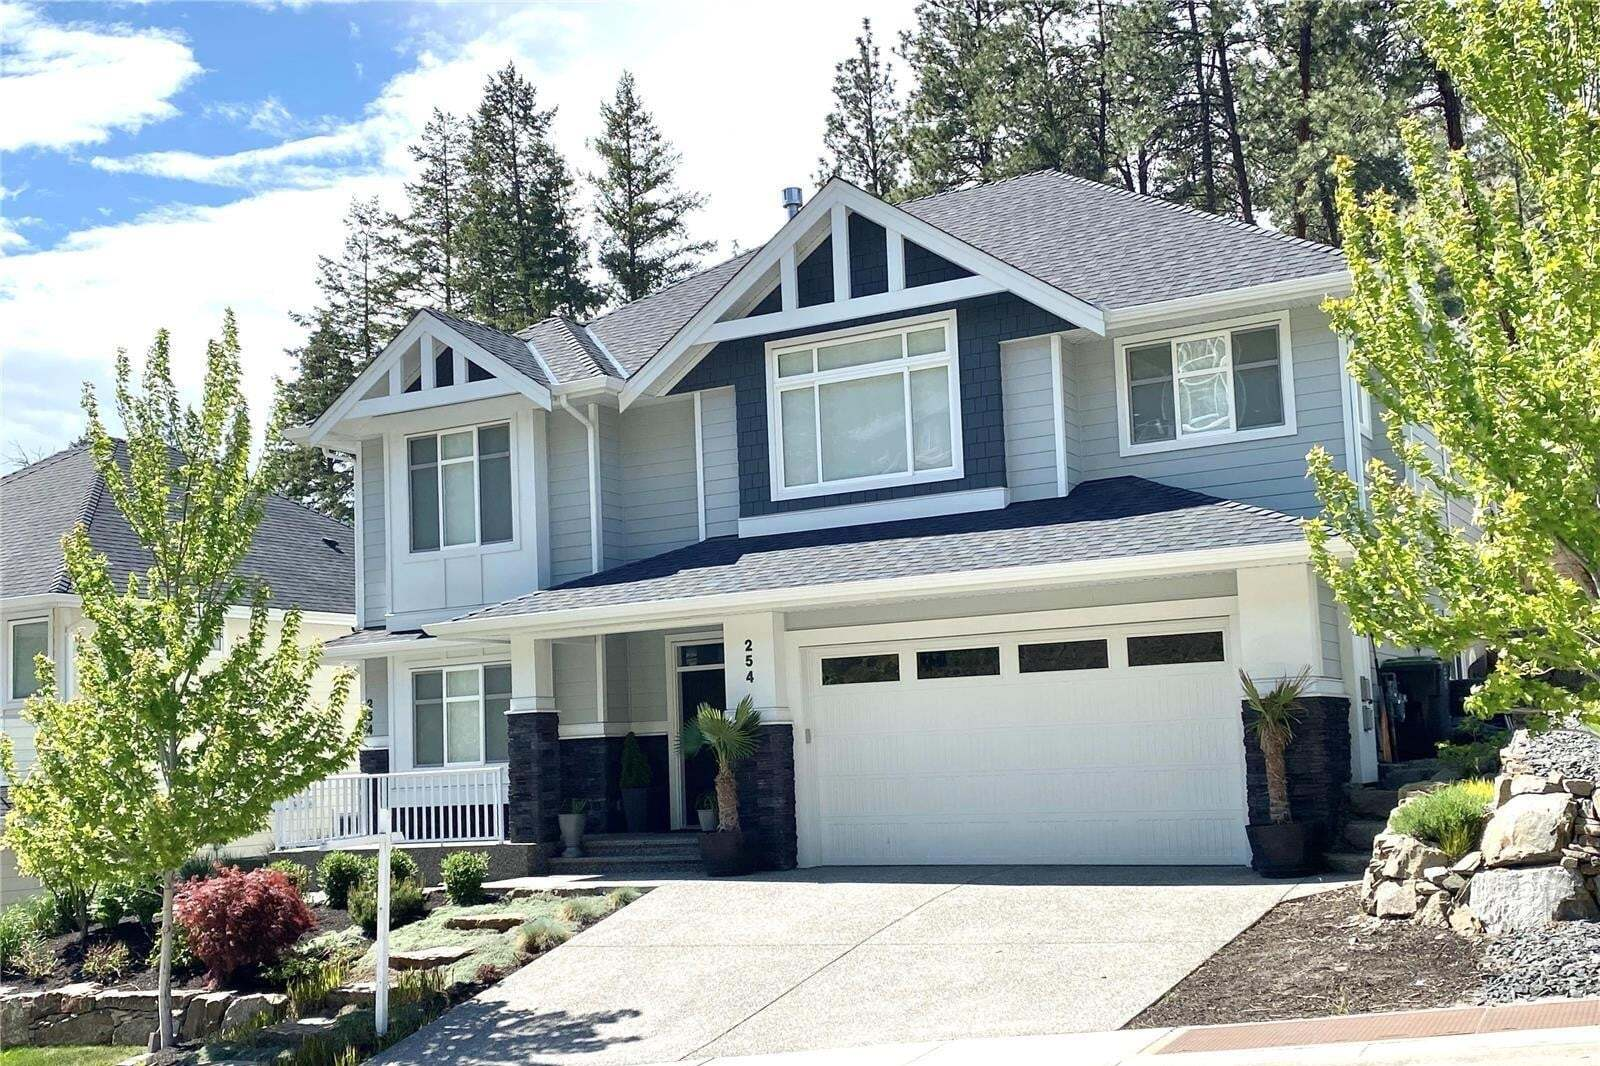 House for sale at 254 Upper Canyon Dr Kelowna British Columbia - MLS: 10207391